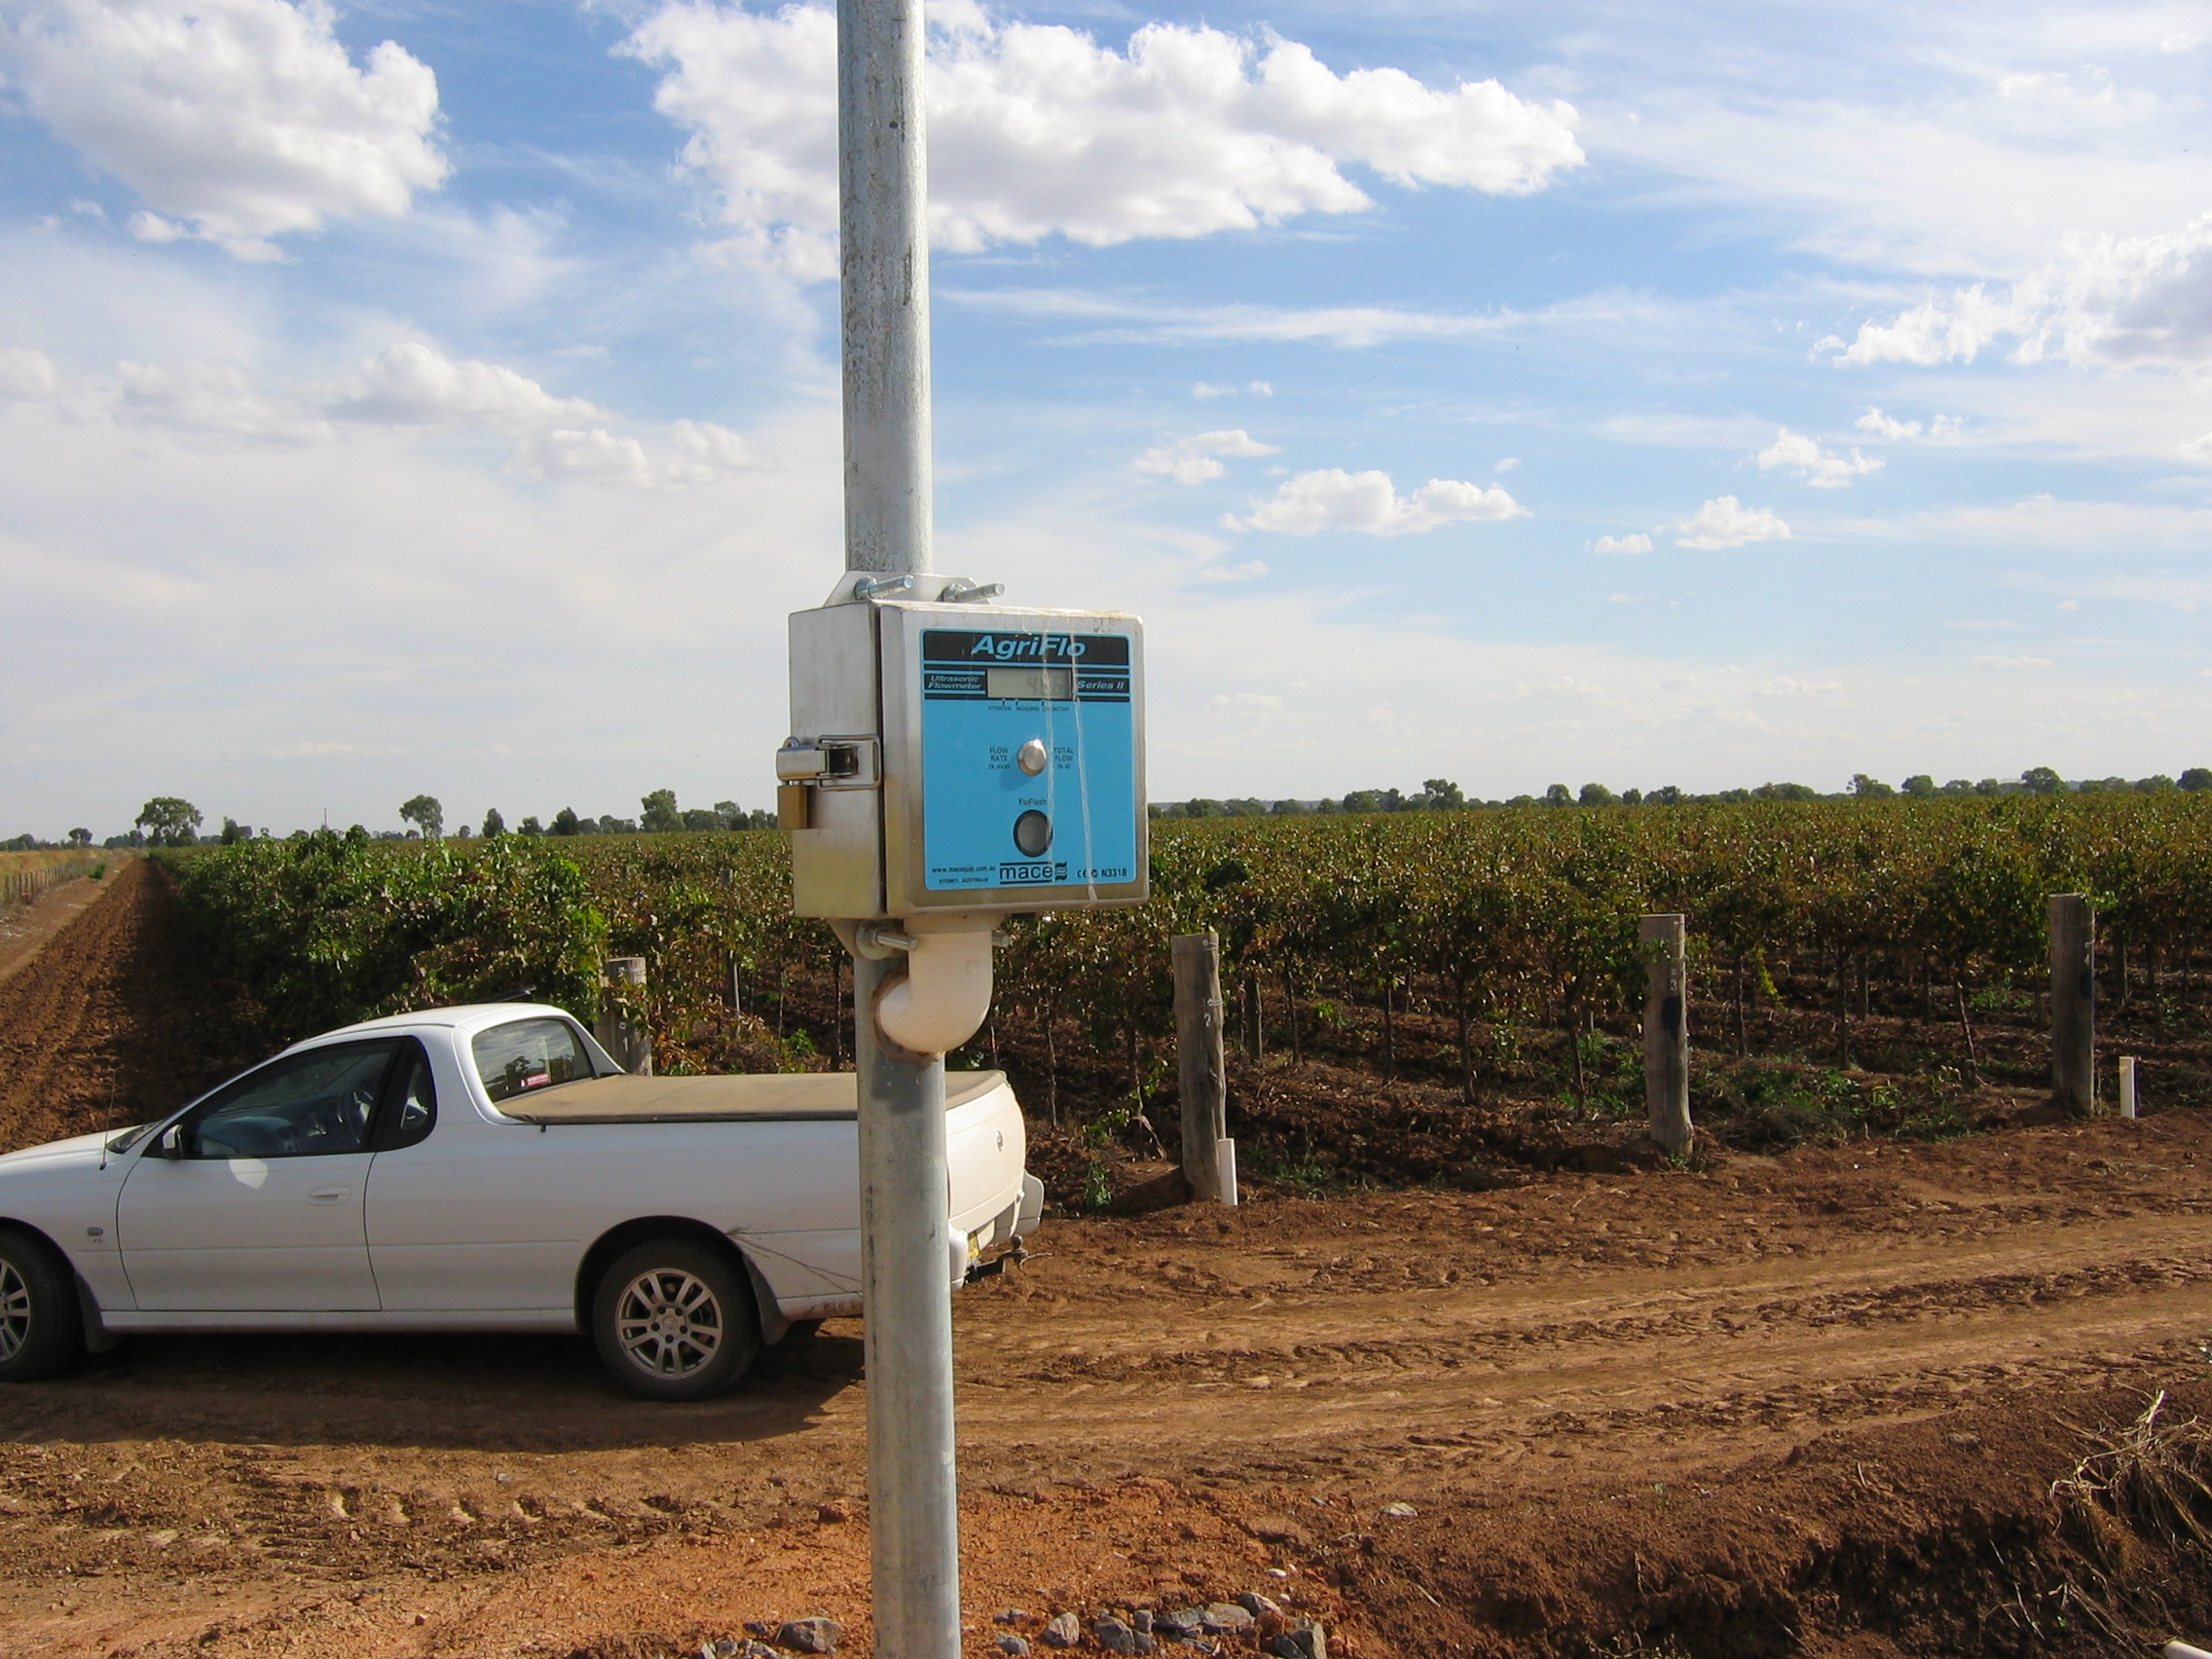 Ultrasonic water meter used to measure water applied to irrigation fields